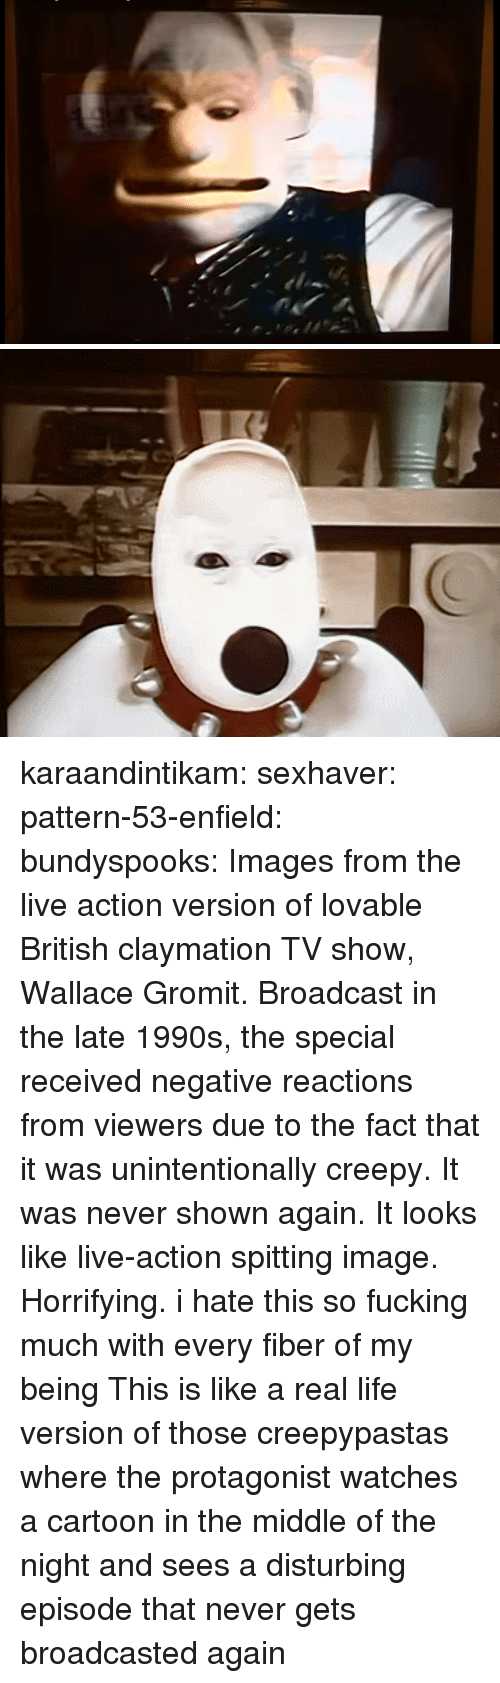 Enfield: karaandintikam:  sexhaver:  pattern-53-enfield:  bundyspooks: Images from the live action version of lovable British claymation TV show, Wallace  Gromit. Broadcast in the late 1990s, the special received negative reactions from viewers due to the fact that it was unintentionally creepy. It was never shown again.  It looks like live-action spitting image. Horrifying.   i hate this so fucking much with every fiber of my being  This is like a real life version of those creepypastas where the protagonist watches a cartoon in the middle of the night and sees a disturbing episode that never gets broadcasted again